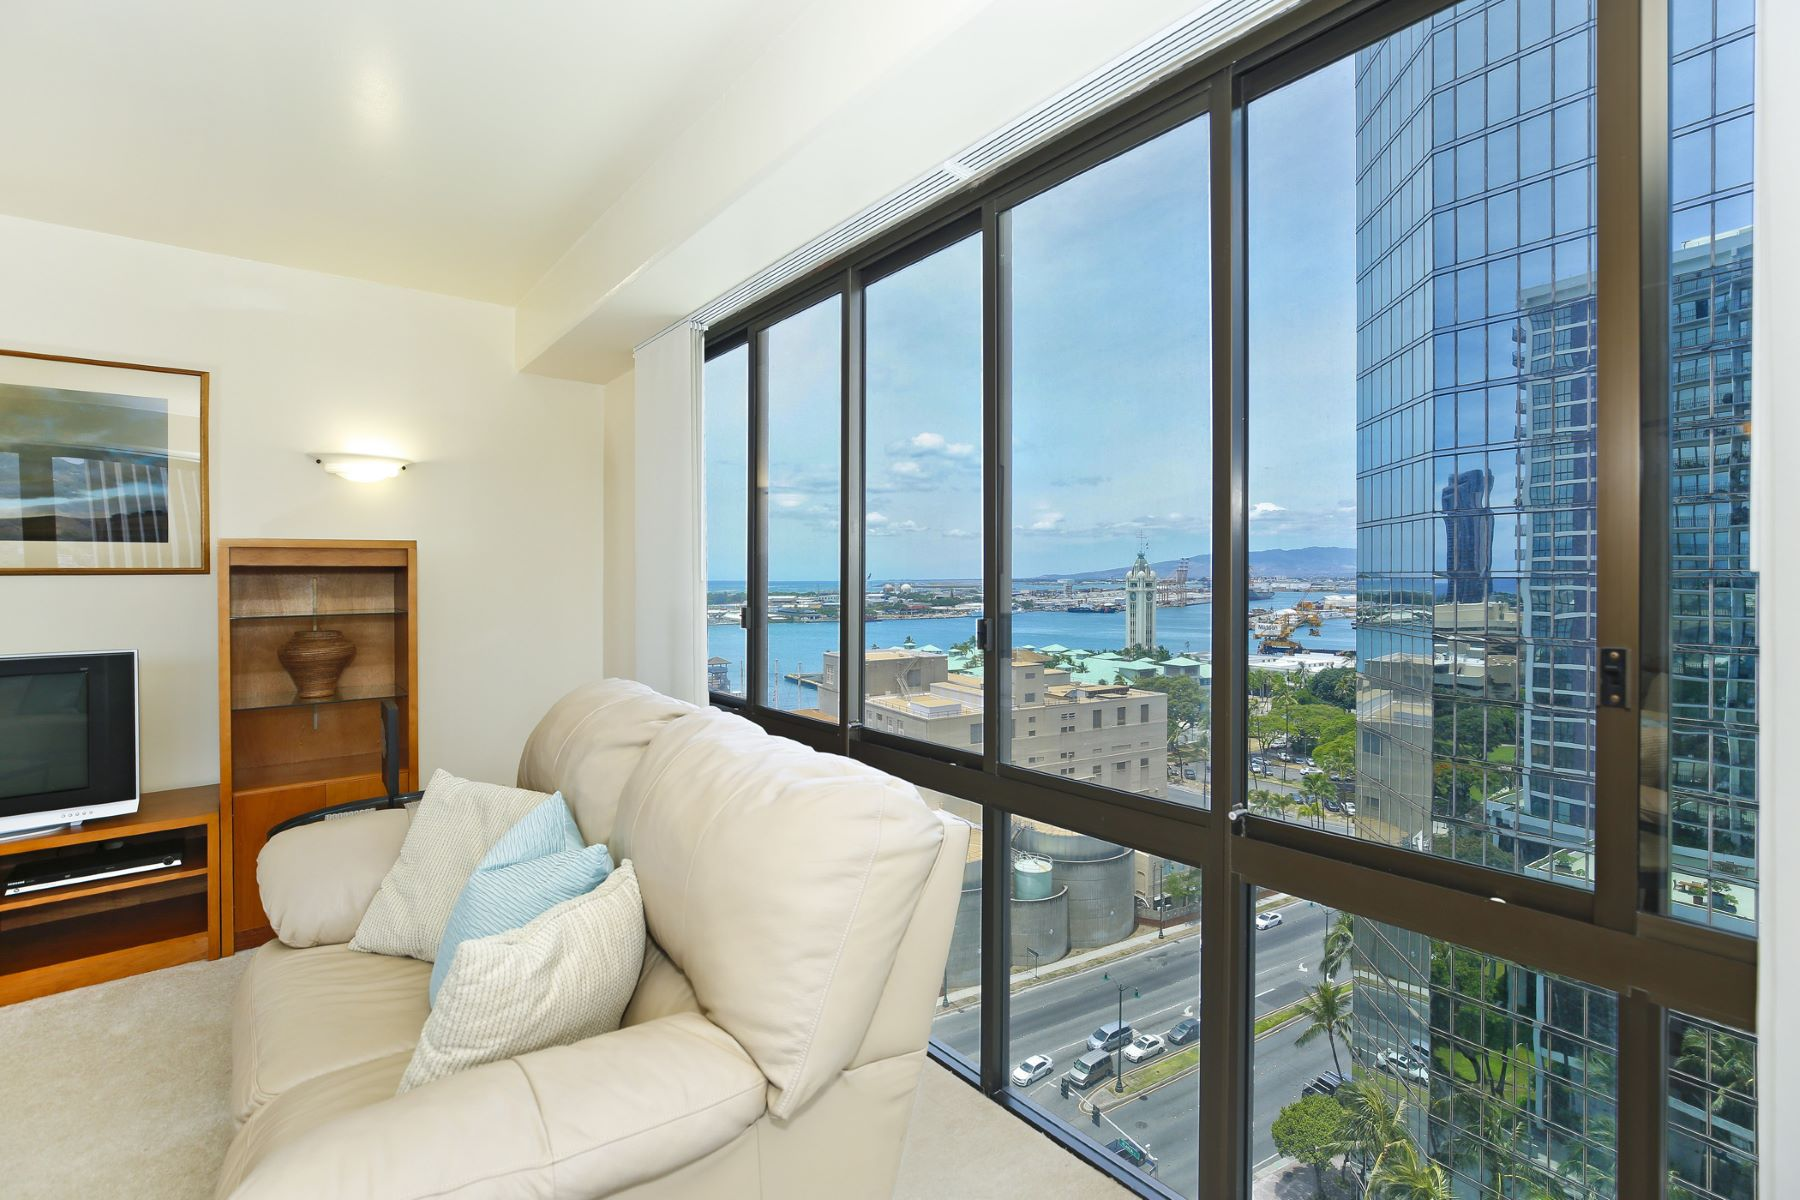 Additional photo for property listing at Aloha Tower Views 700 Richards Street #1704 Honolulu, Hawaii 96813 United States